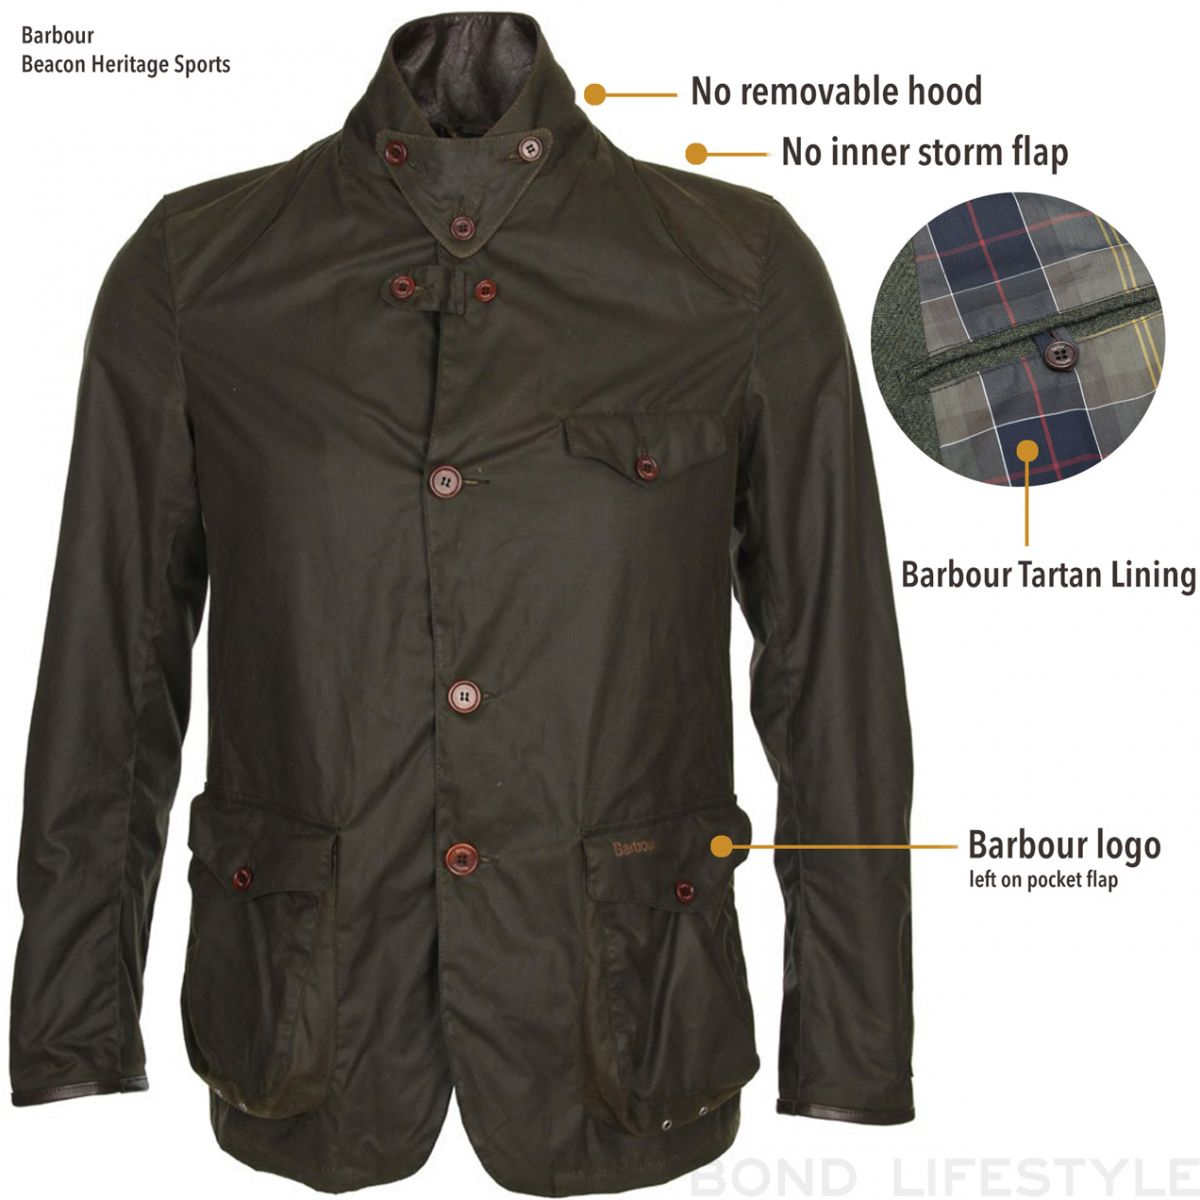 Barbour Beacon Heritage Sports jacket